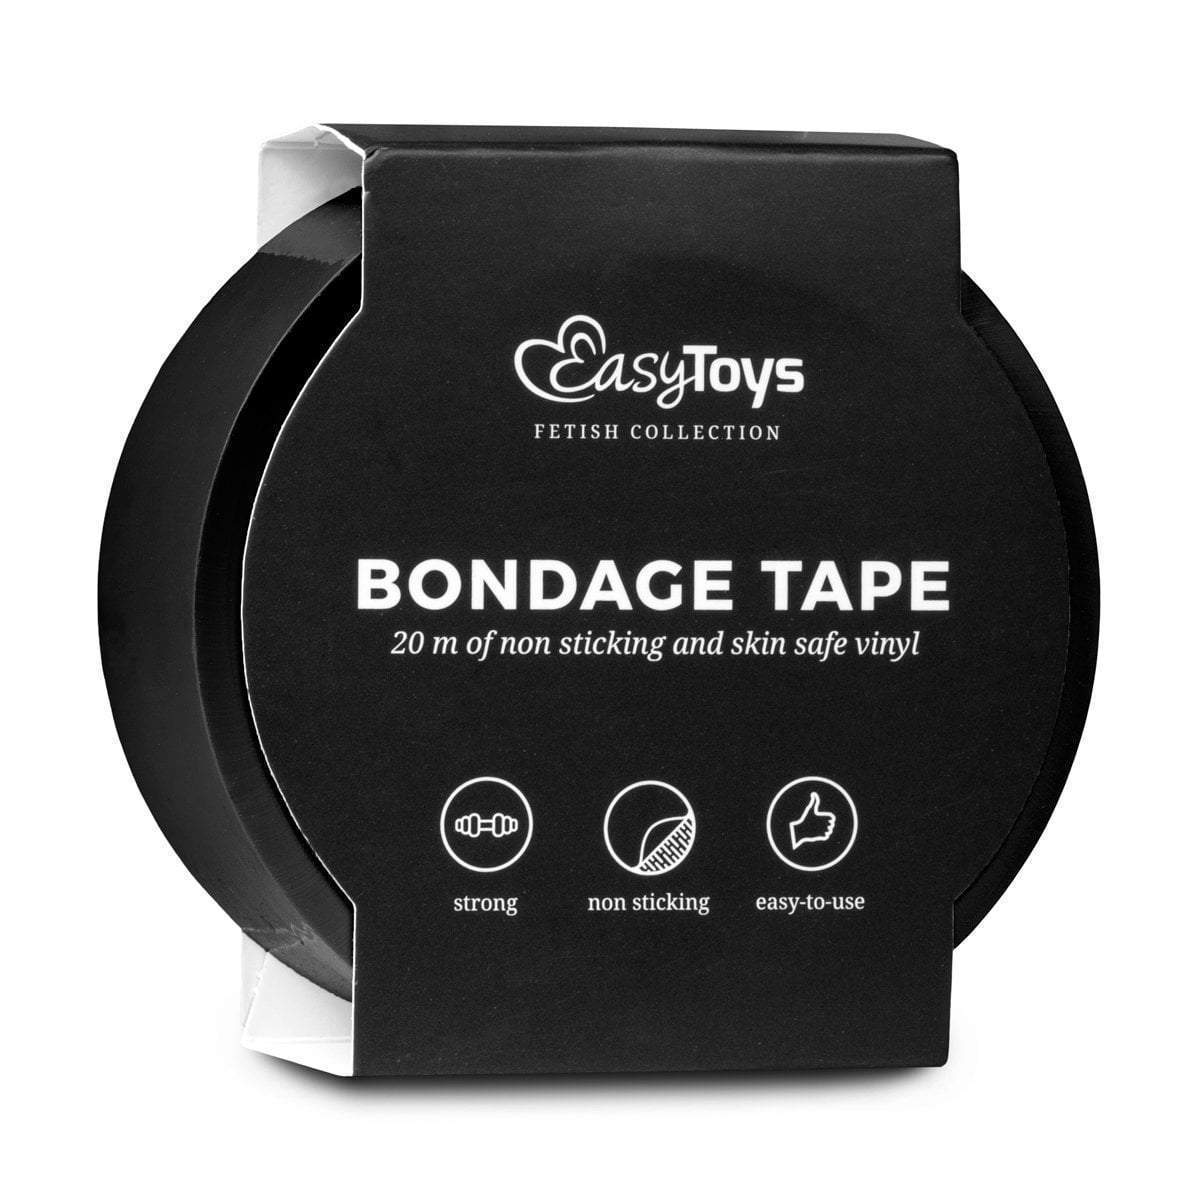 Easy Toys Fetish Collection tape Black Bondage Tape 20m